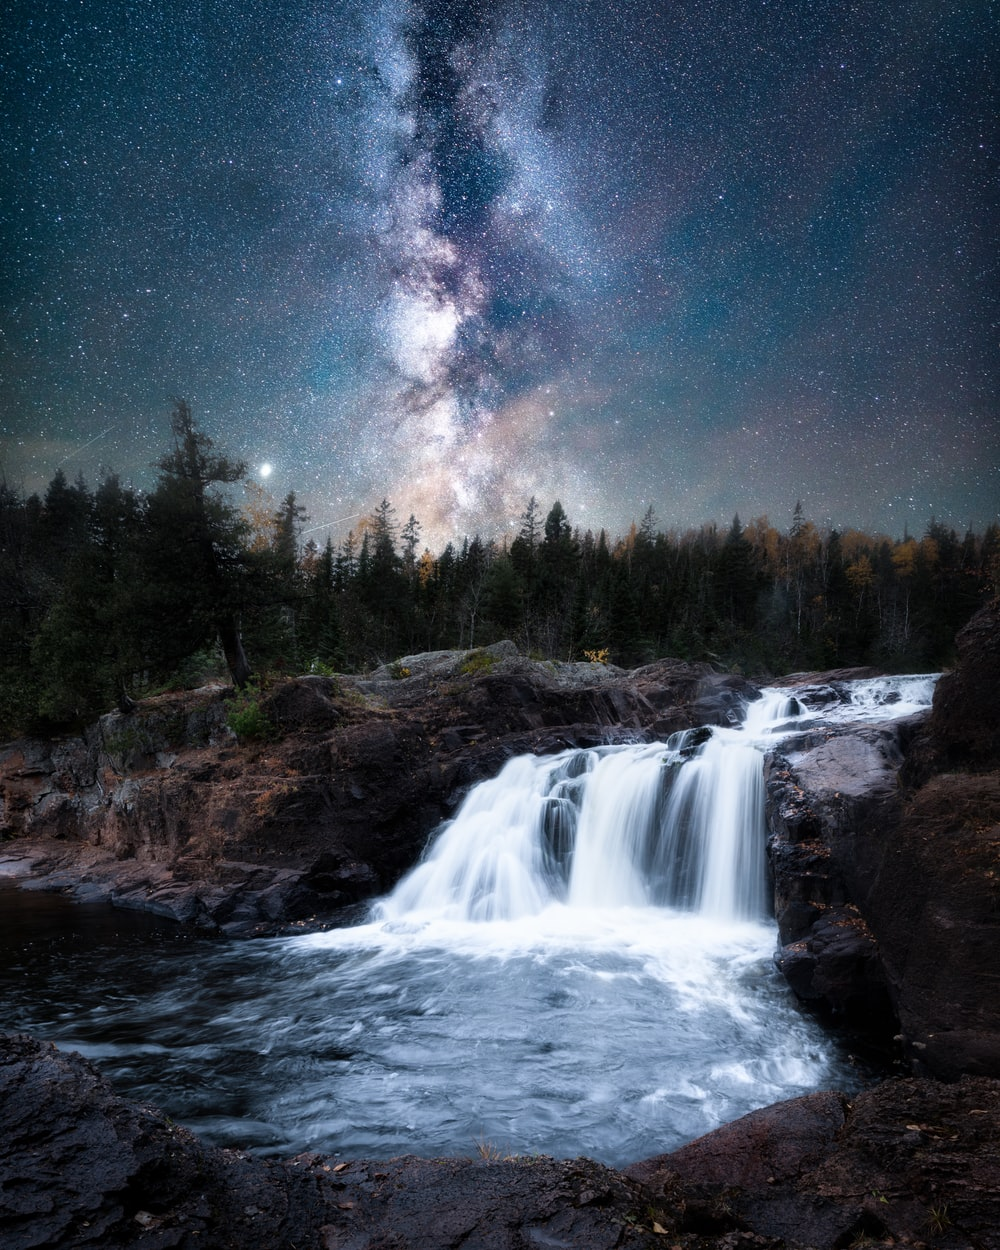 waterfalls near green trees under blue sky during night time